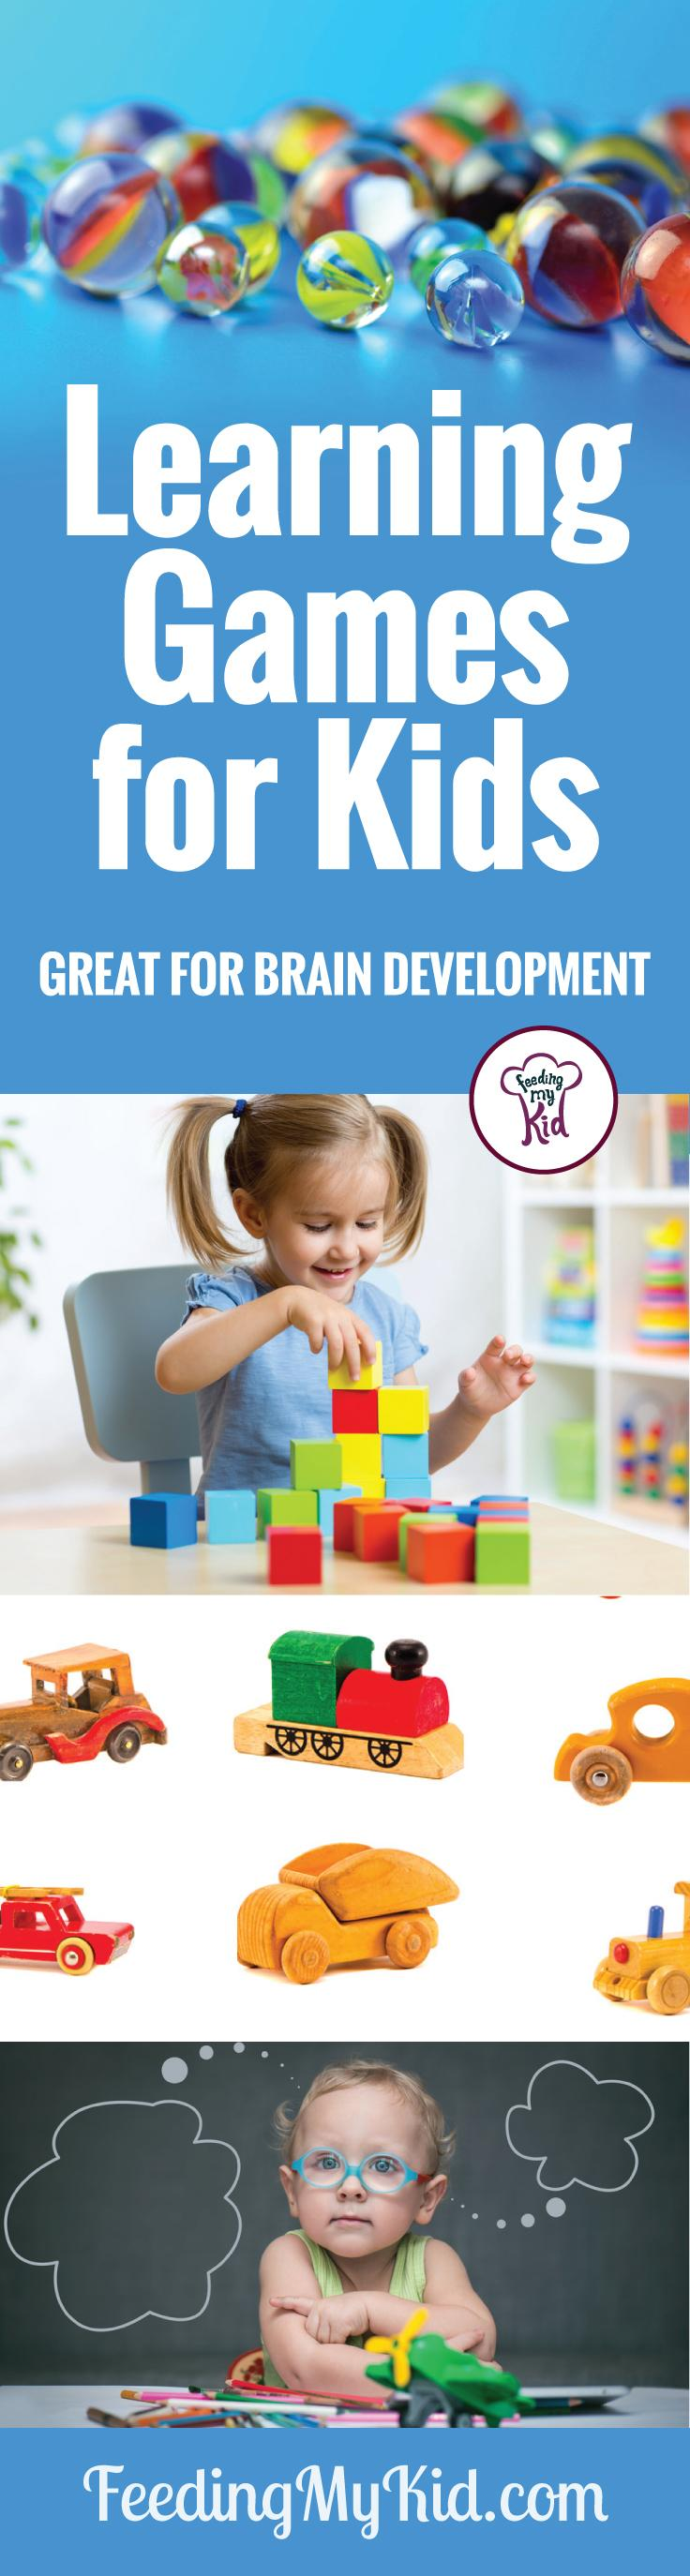 Learning Games for Kids Great For Brain Development and Motor Skills